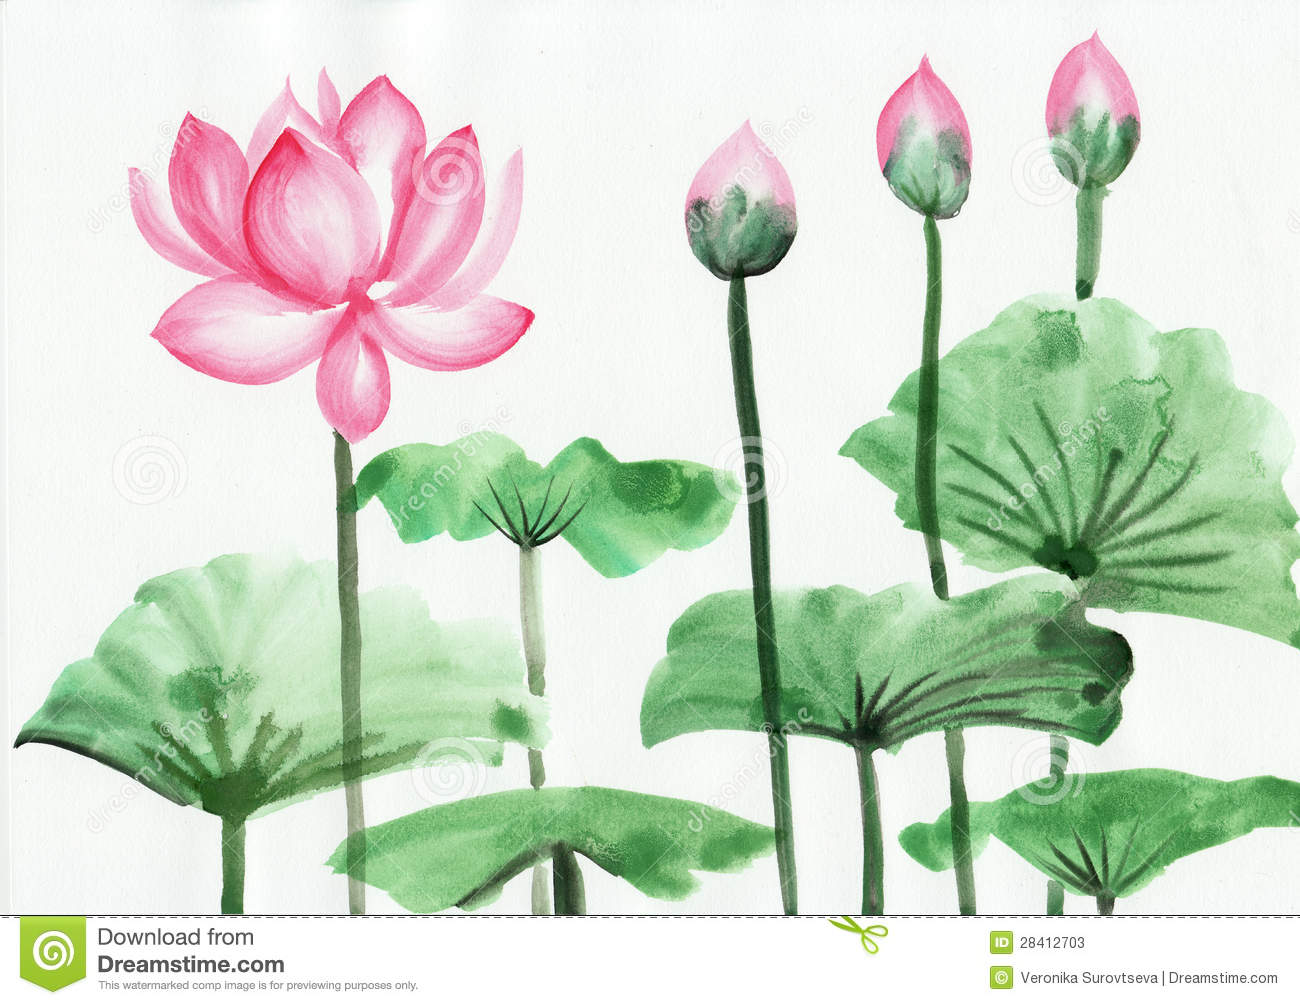 Watercolor painting of pink lotus flower stock illustration watercolor painting of pink lotus flower stock photos izmirmasajfo